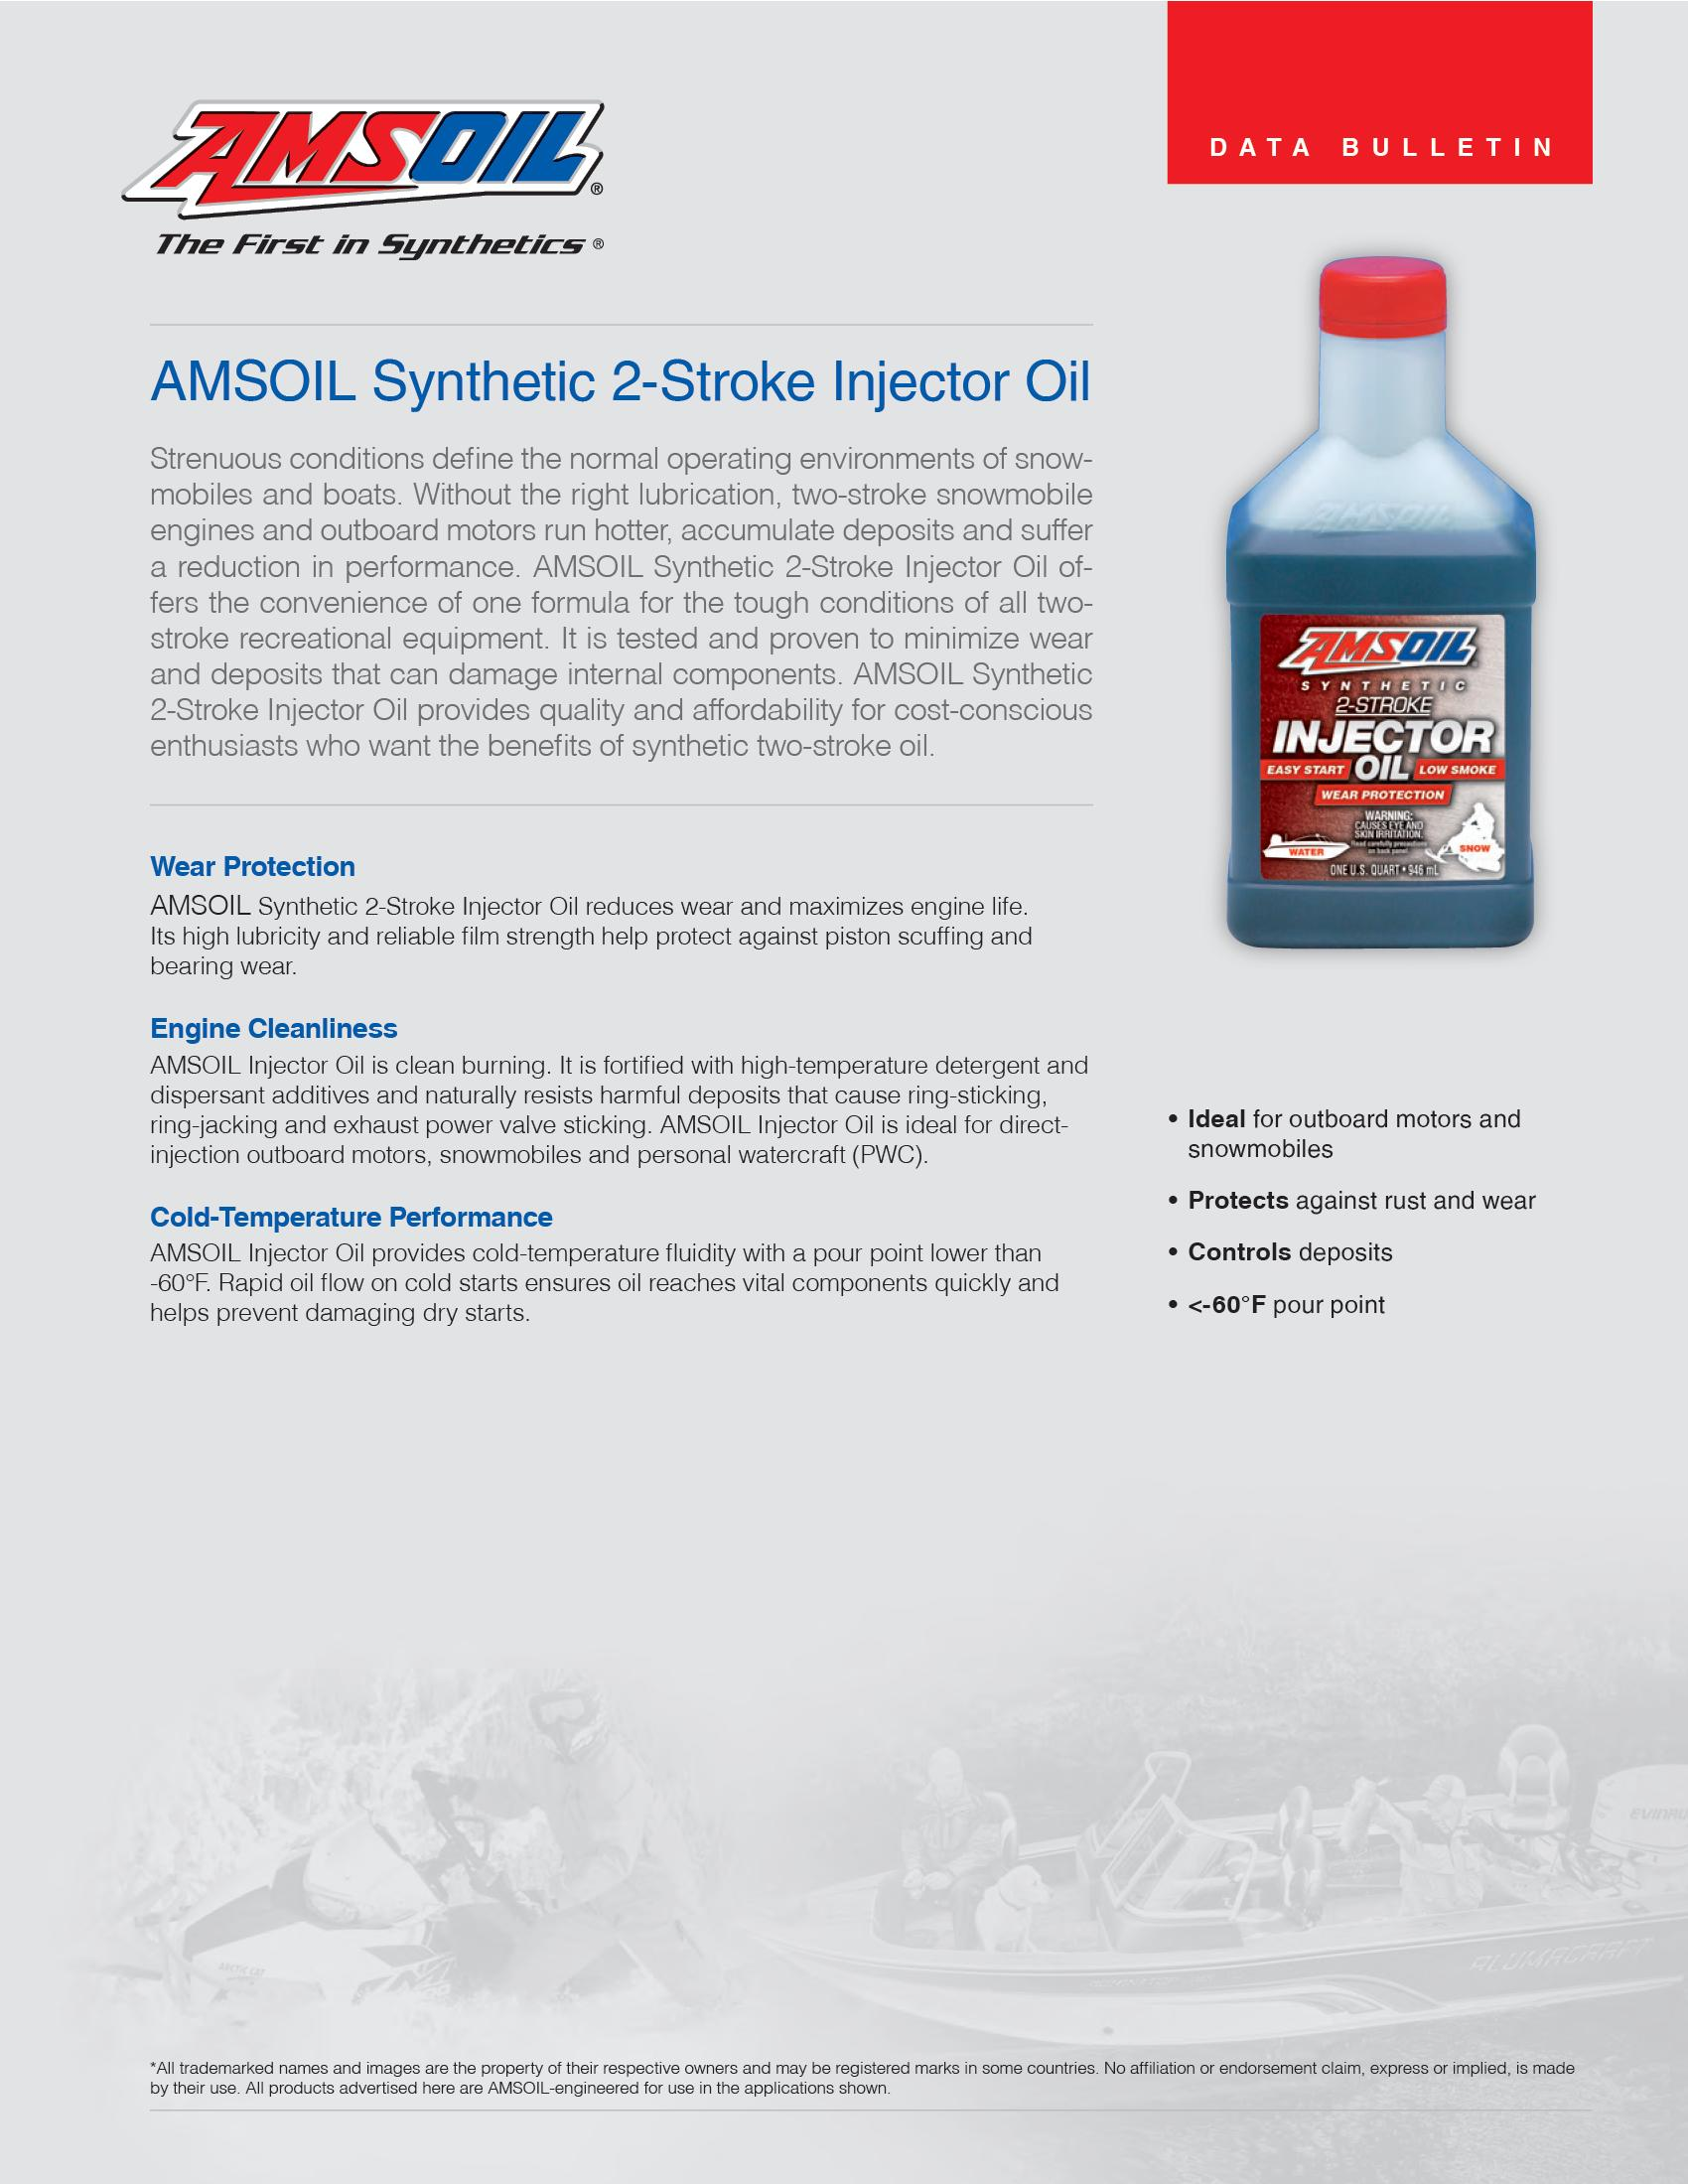 Synthetic 2-Cycle Injector Oil